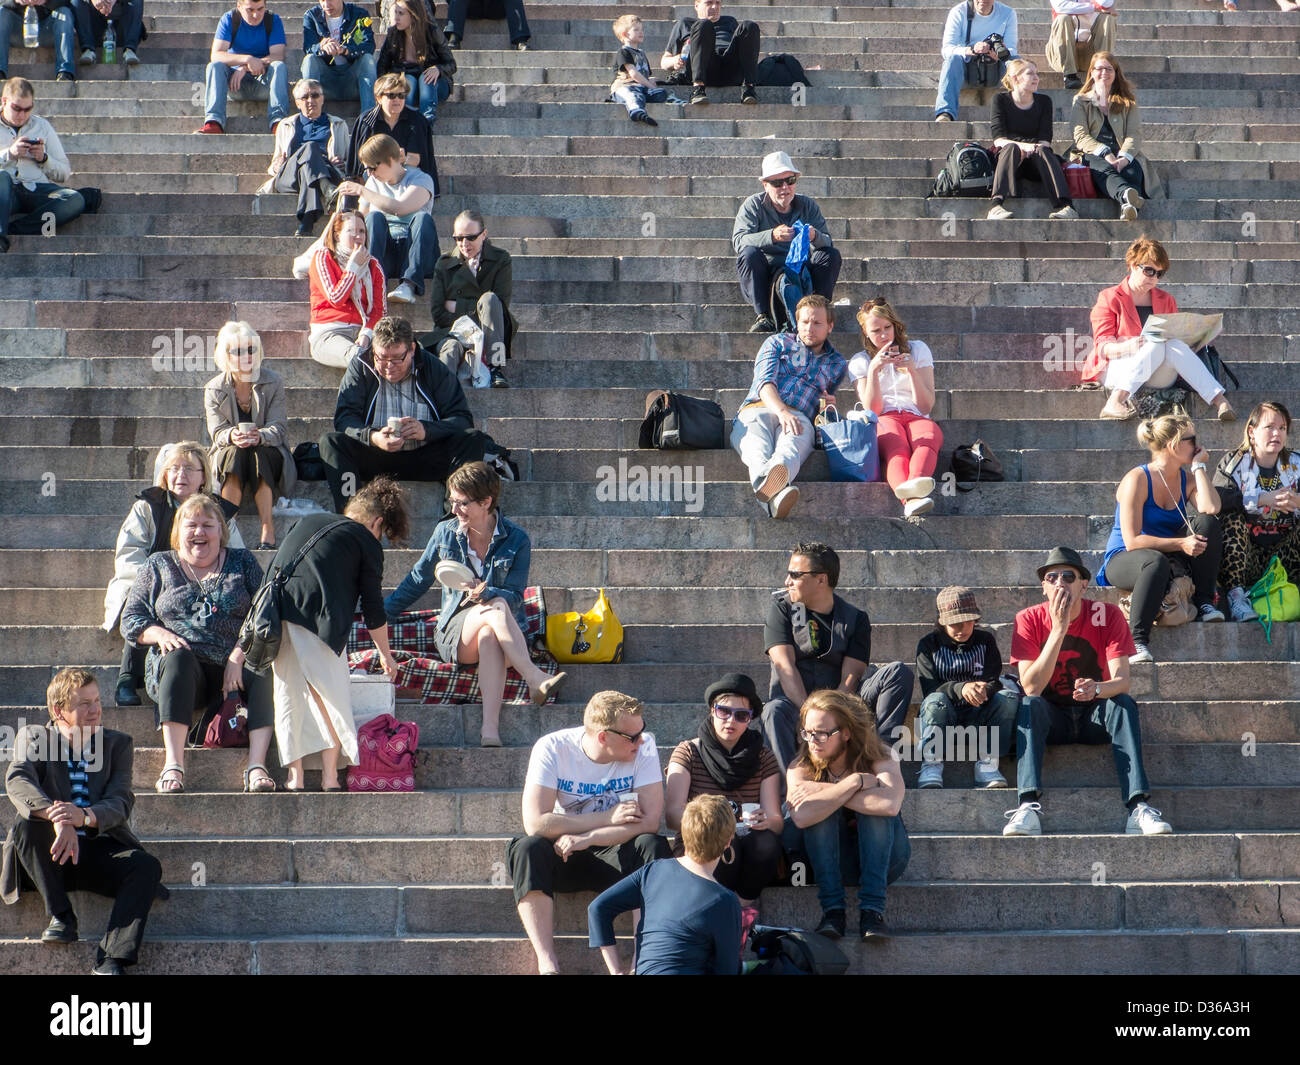 People sitting in the sun on the stone steps outside of the cathedral in Helsinki, Finland. - Stock Image